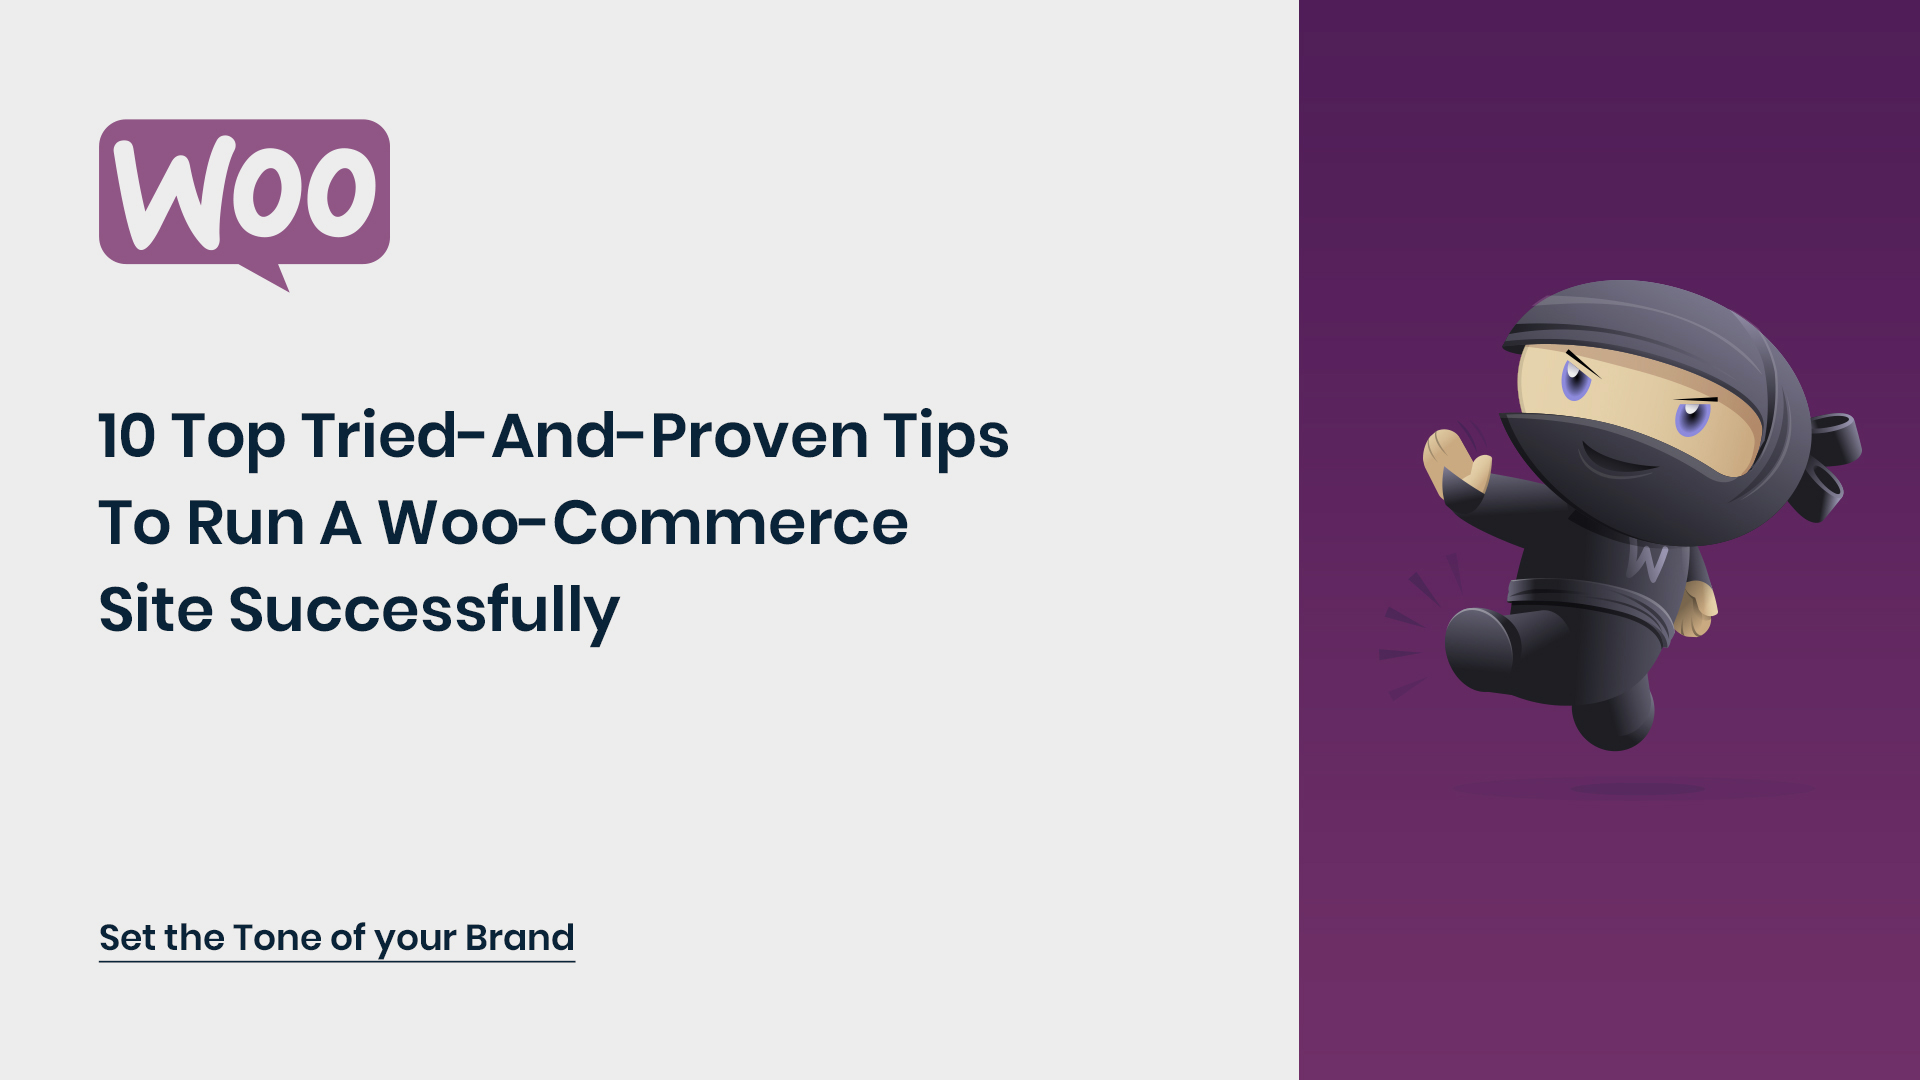 10 Top Tried-and-Proven Tips to run a Woo-Commerce site successfully